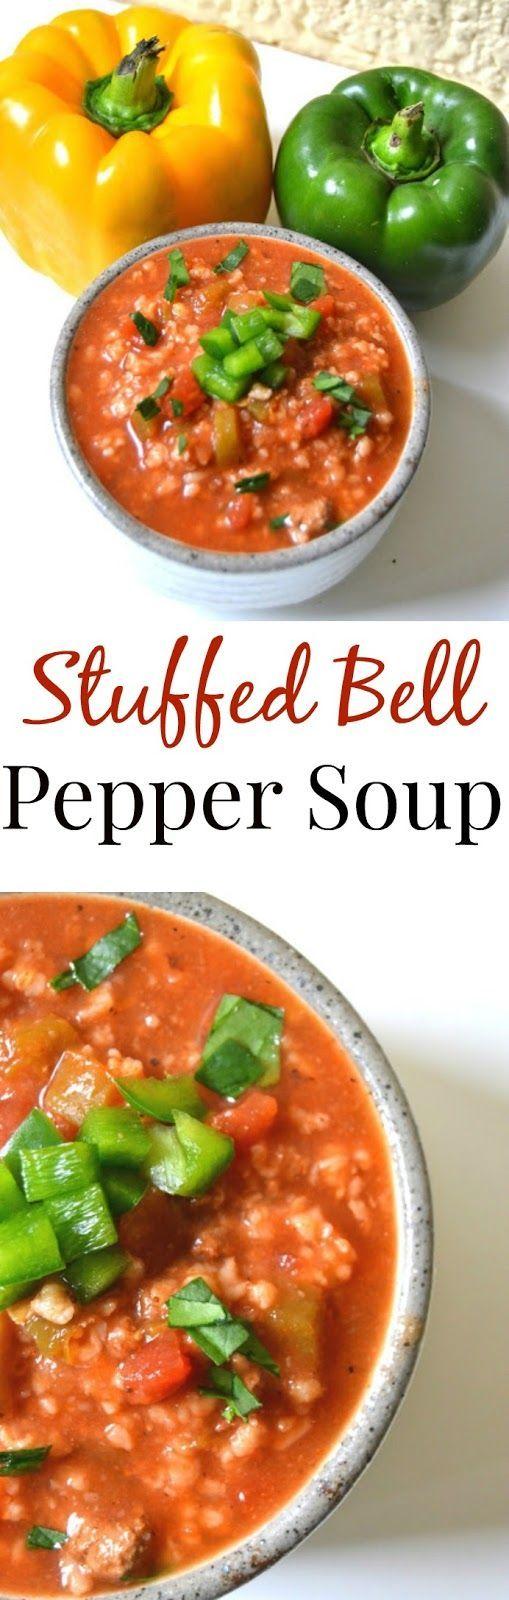 Stuffed Bell Pepper Soup- If you love stuffed bell peppers, you will love this soup! www.nutritionistreviews.com